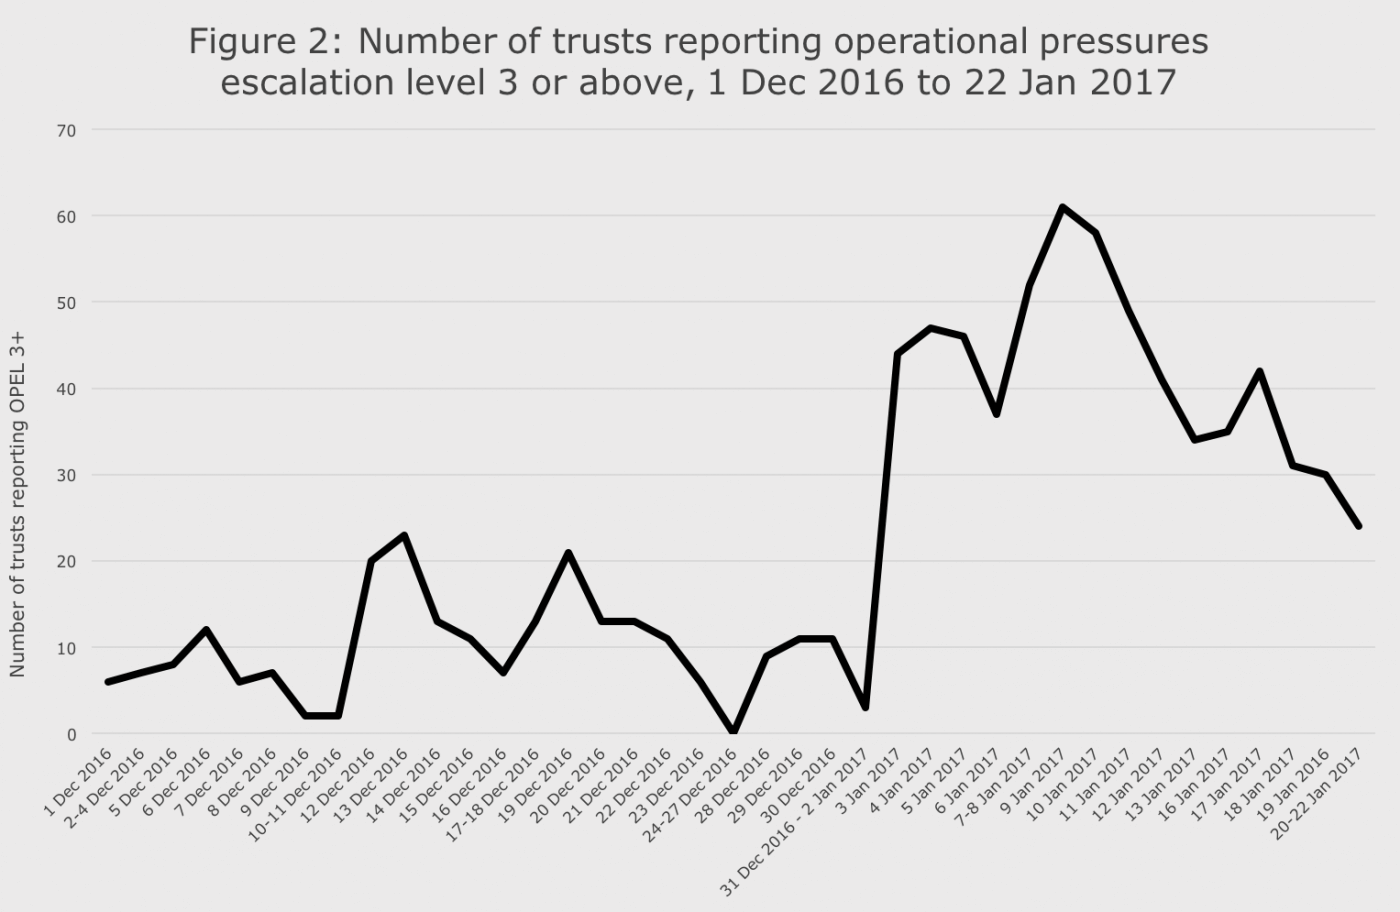 Number of trusts reporting operational pressures escalation level 3 or above, 1 Dec 2016 to 22 Jan 2017